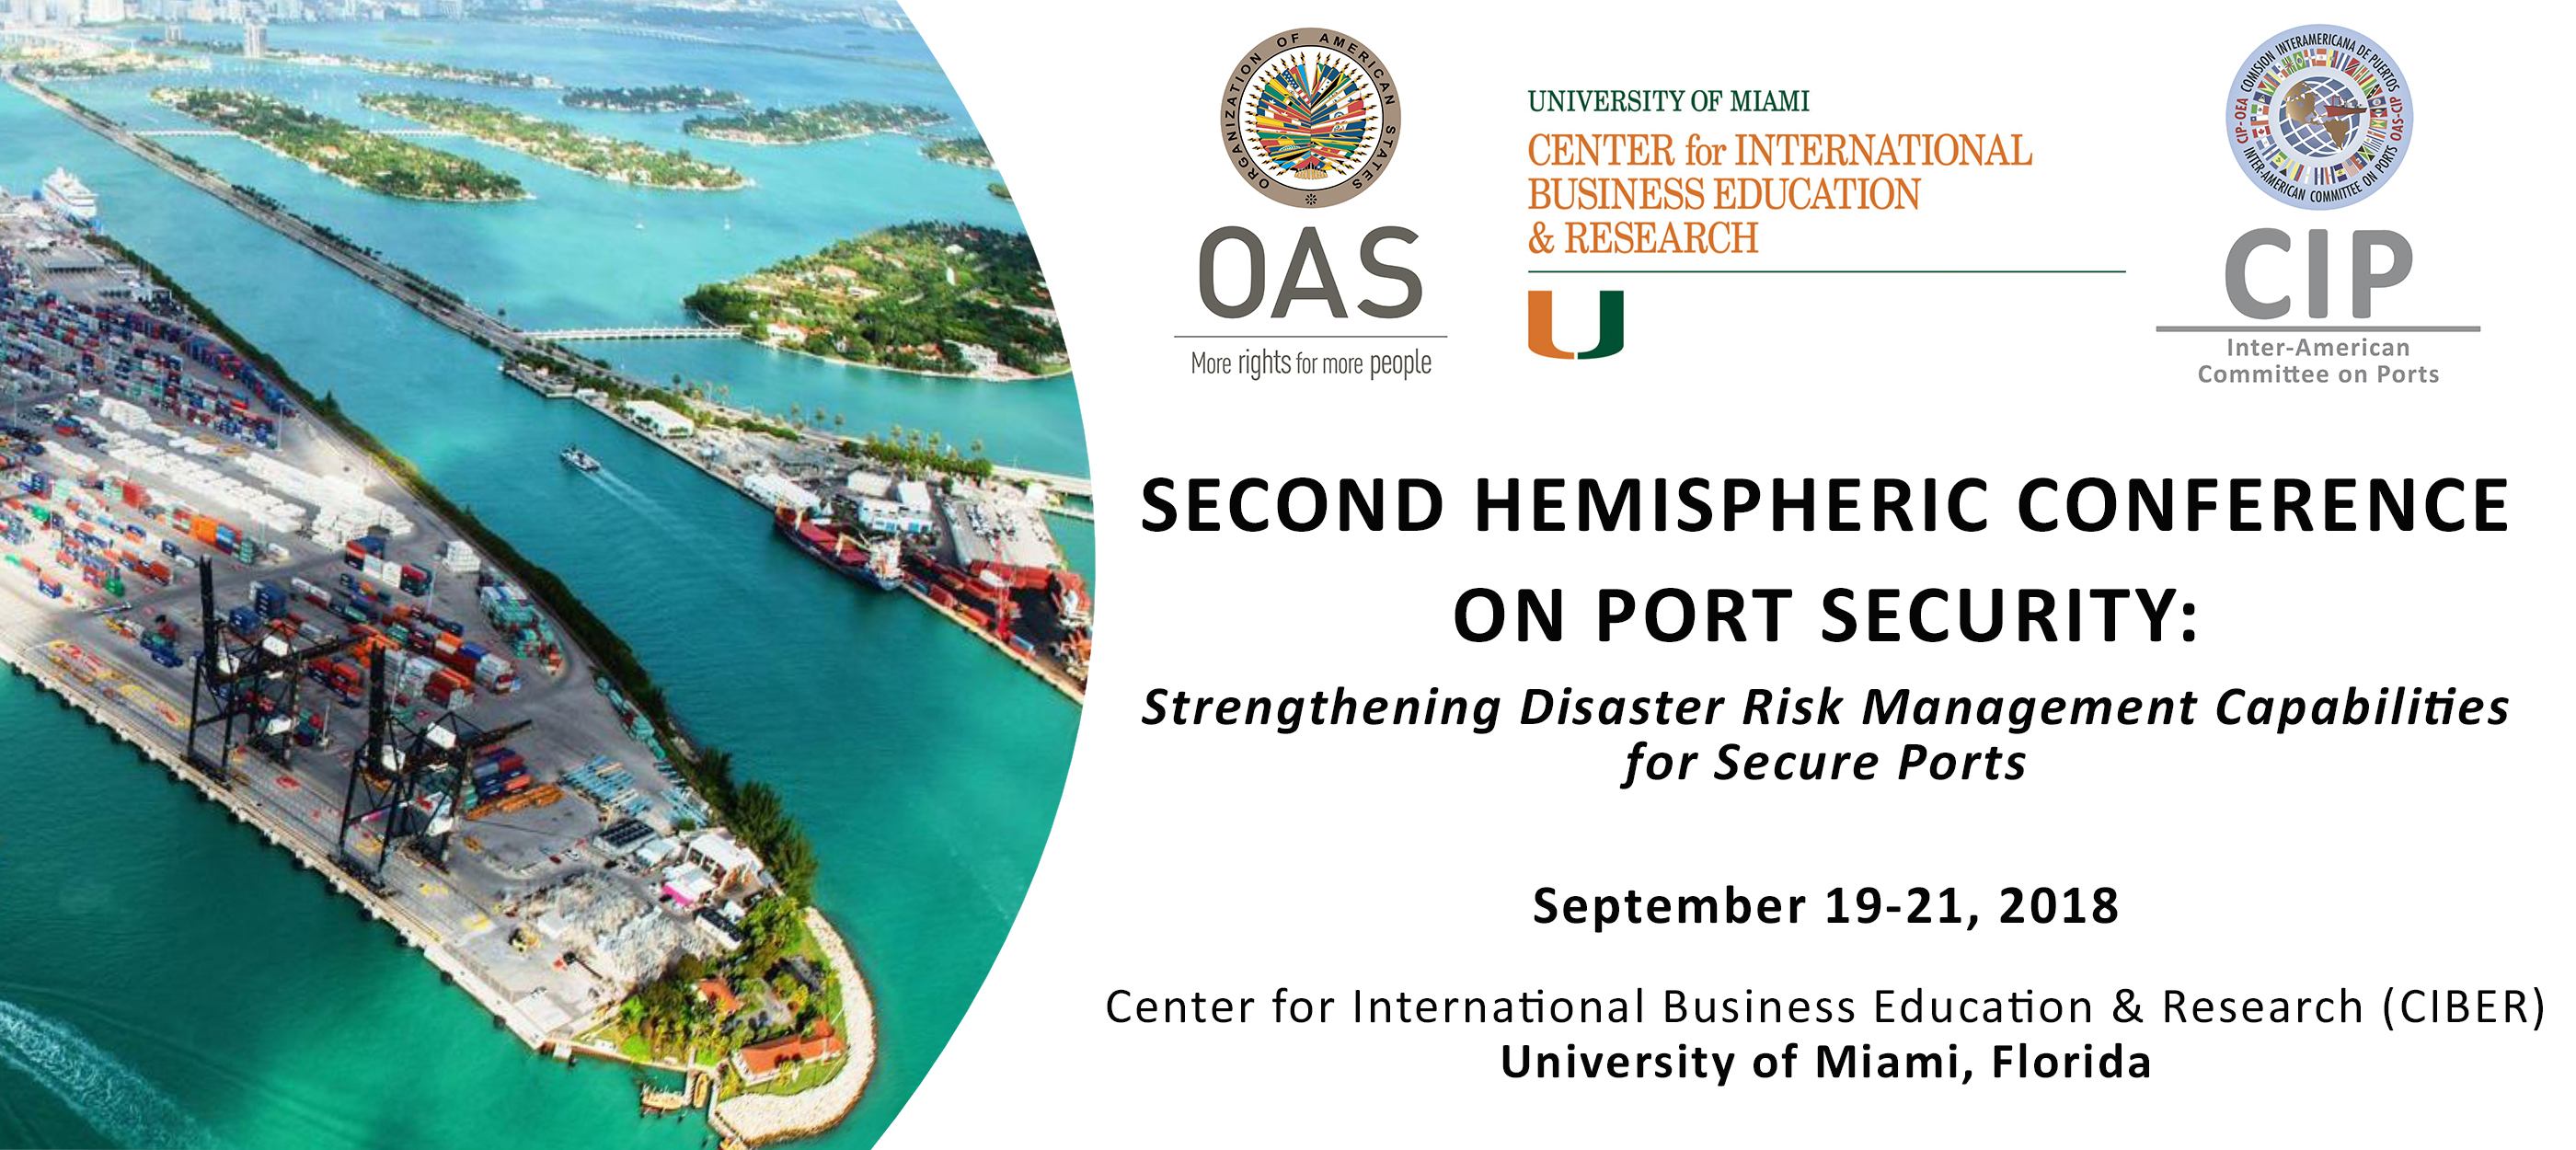 Second Hemispheric Conference on Port Security